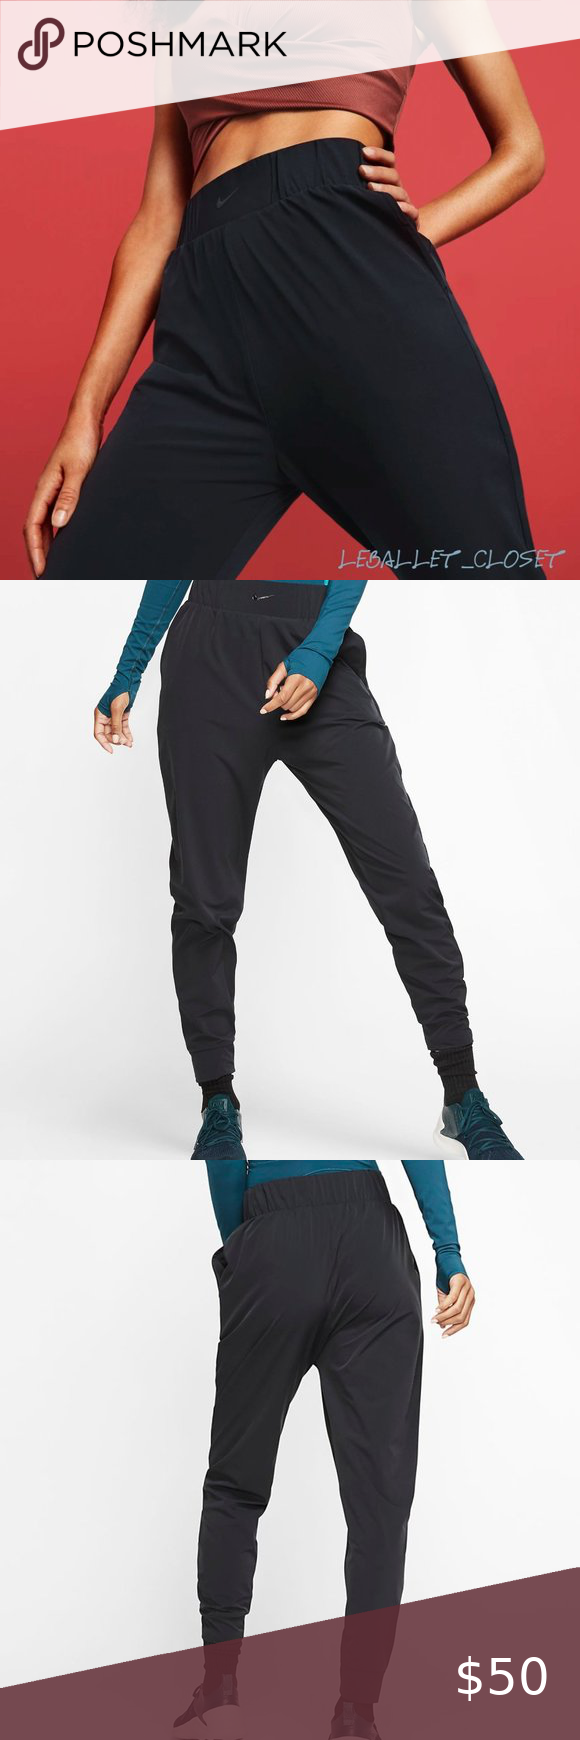 NWT NIKE Bliss Lux Slim Fit Training Pants Size M